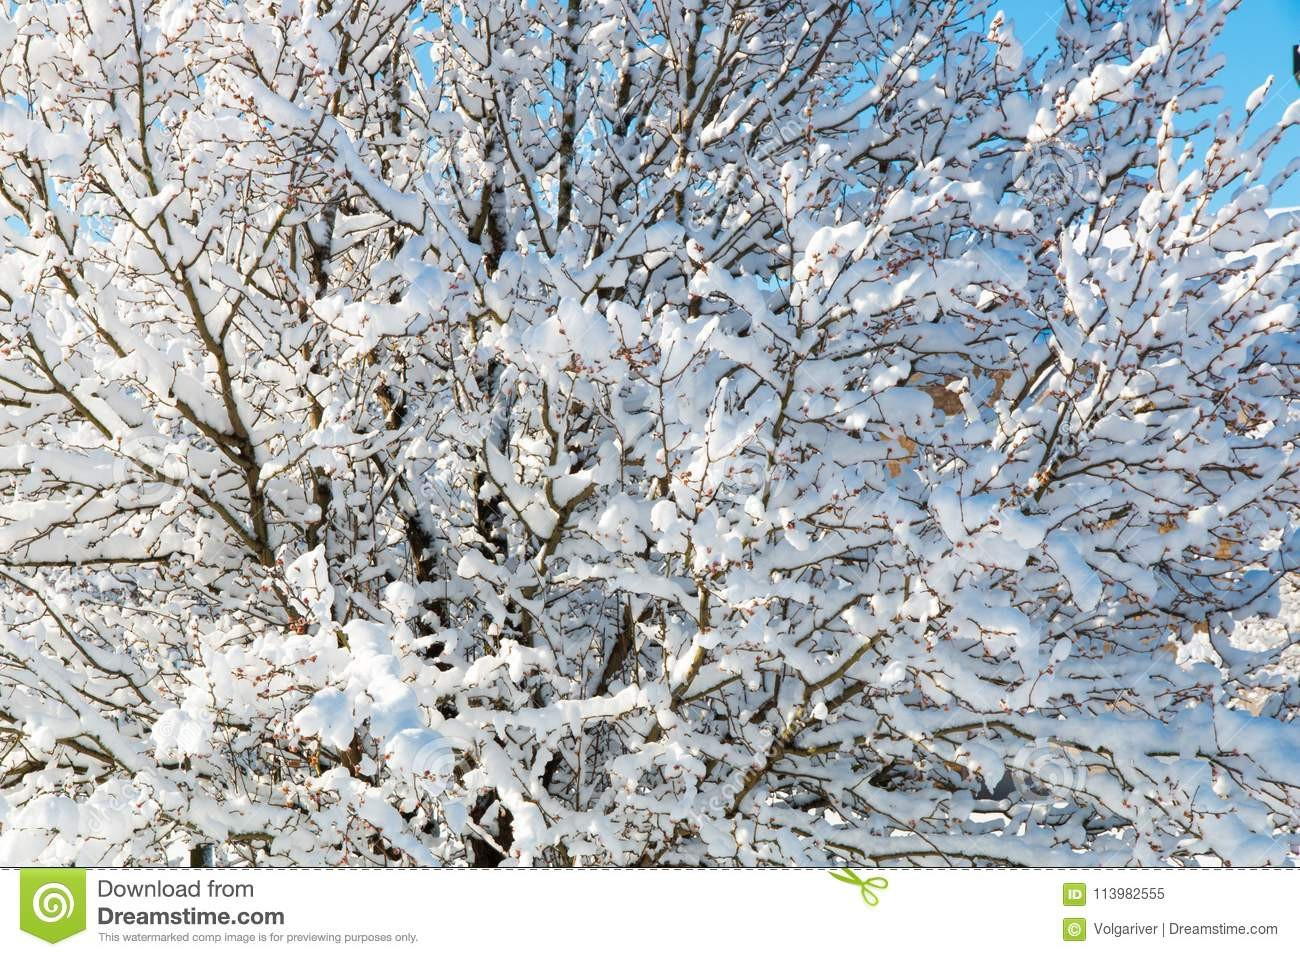 Natural Branches for Vases Of 15 Unique Banch Tree Banches Branches Image Lehahu Wallpaper Throughout Banch Tree Banches Branches Image Best Of Pattern Tree Branches Covered with Snow Natural Background Of